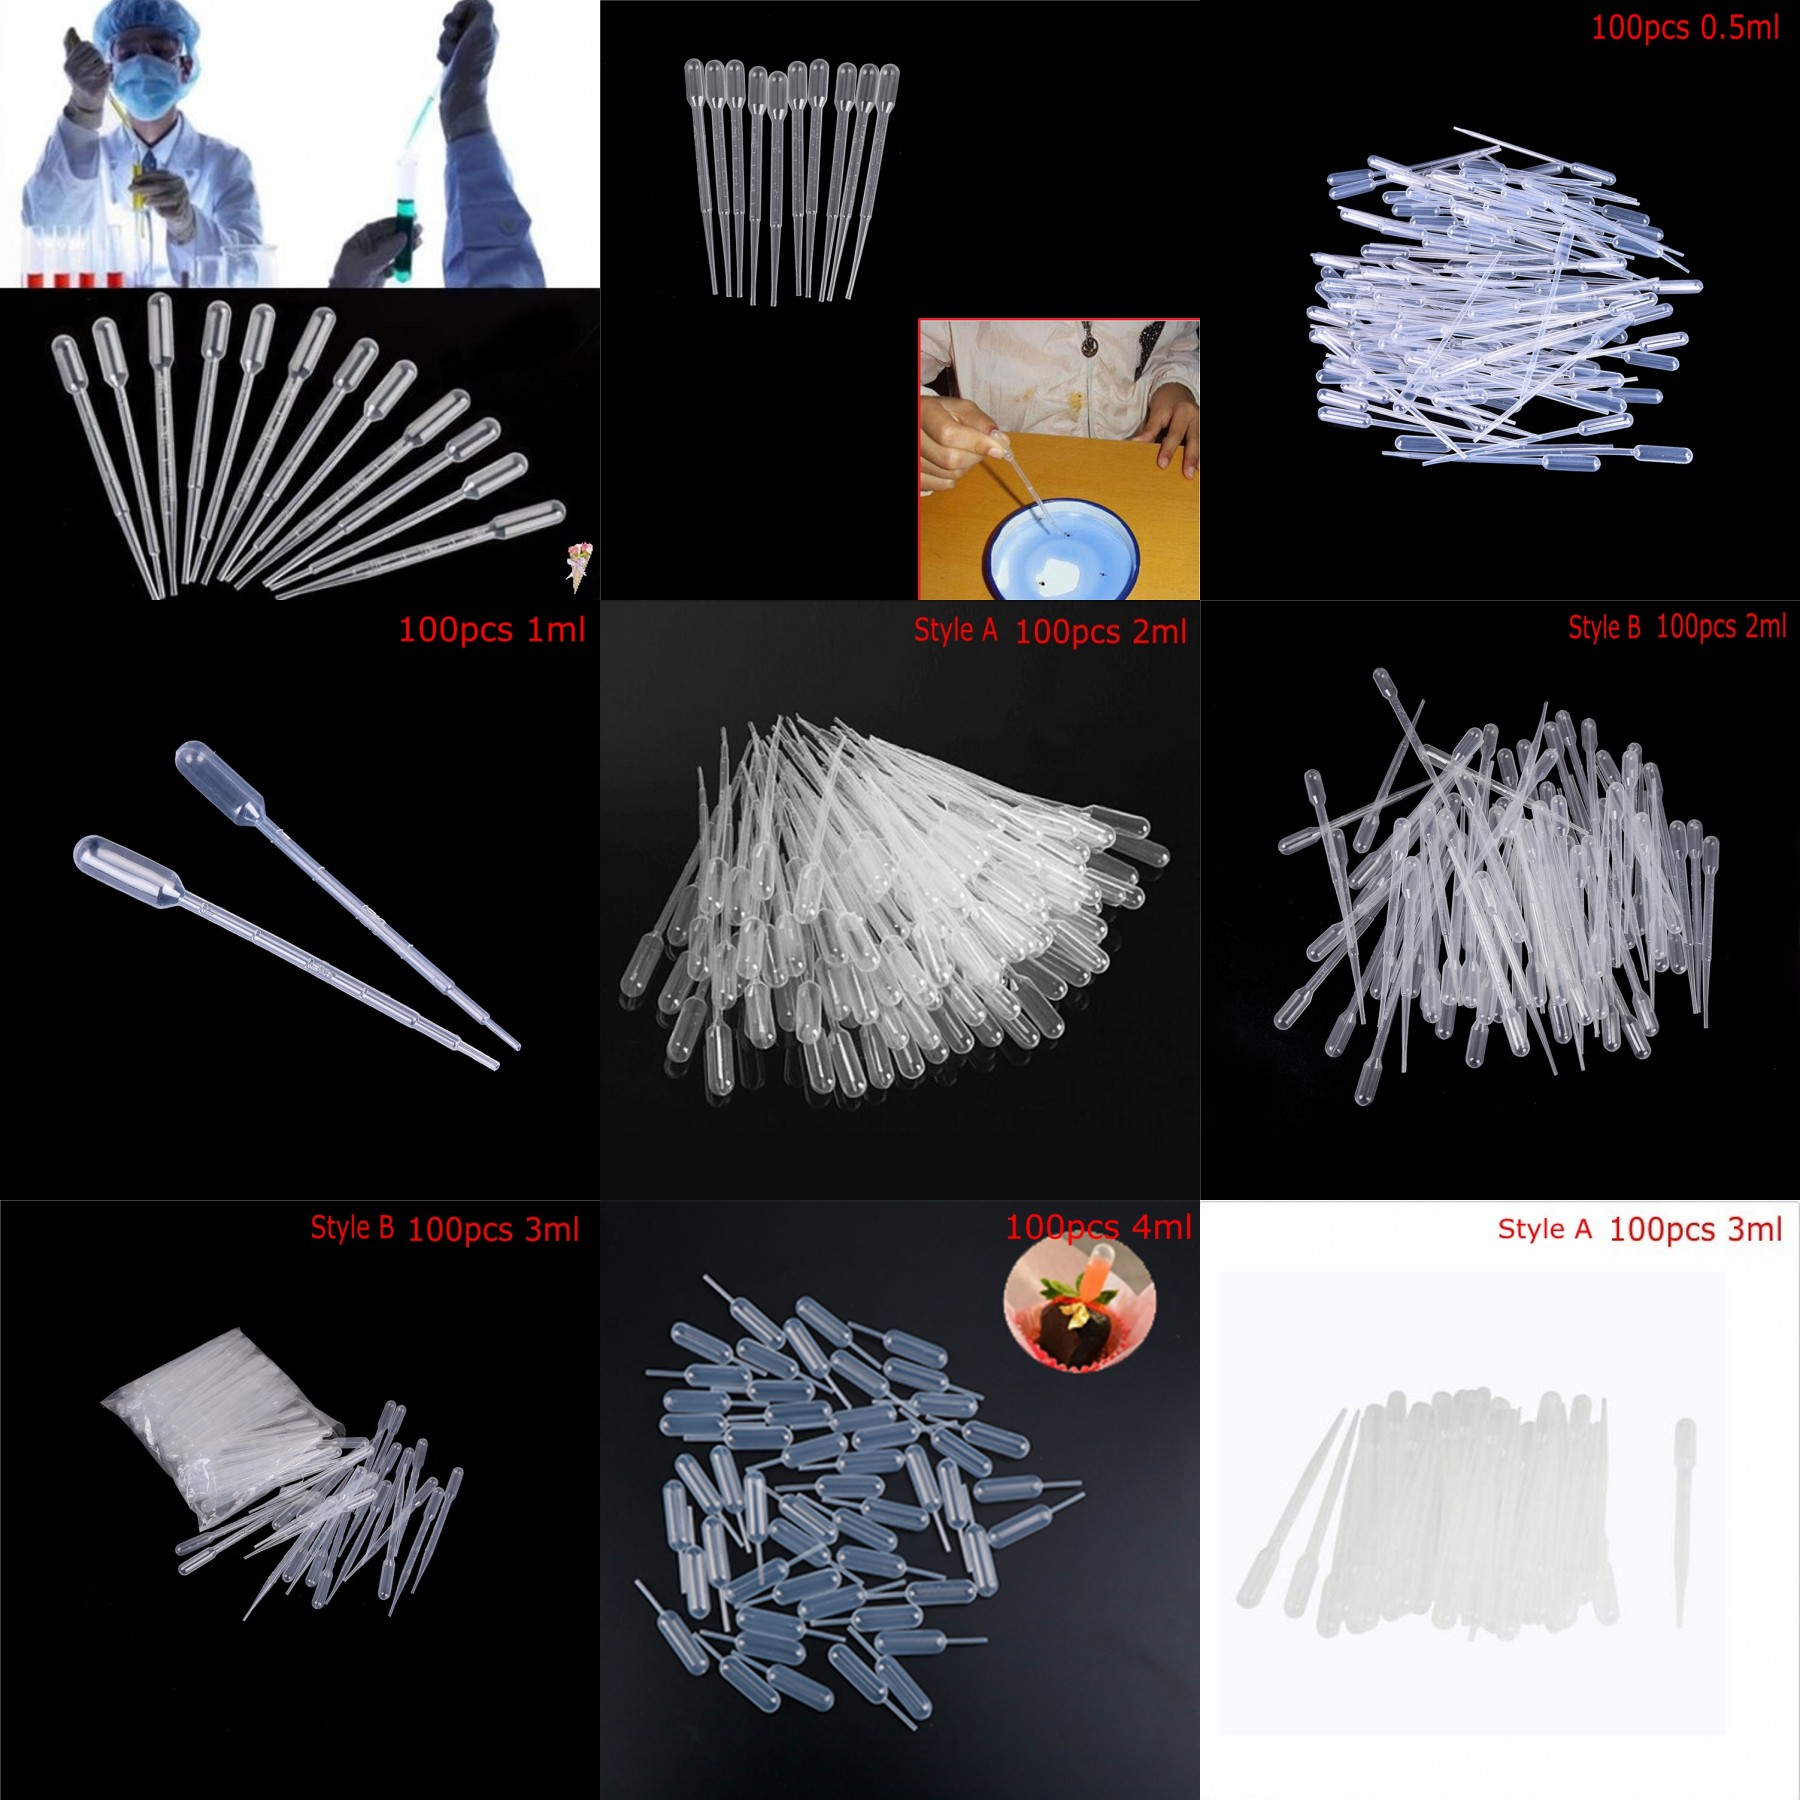 100PCS/Lot 1ML Transparent Pipettes Disposable Safe Plastic Eye Dropper Transfer Graduated Pipettes Eye For School Lab Supplies